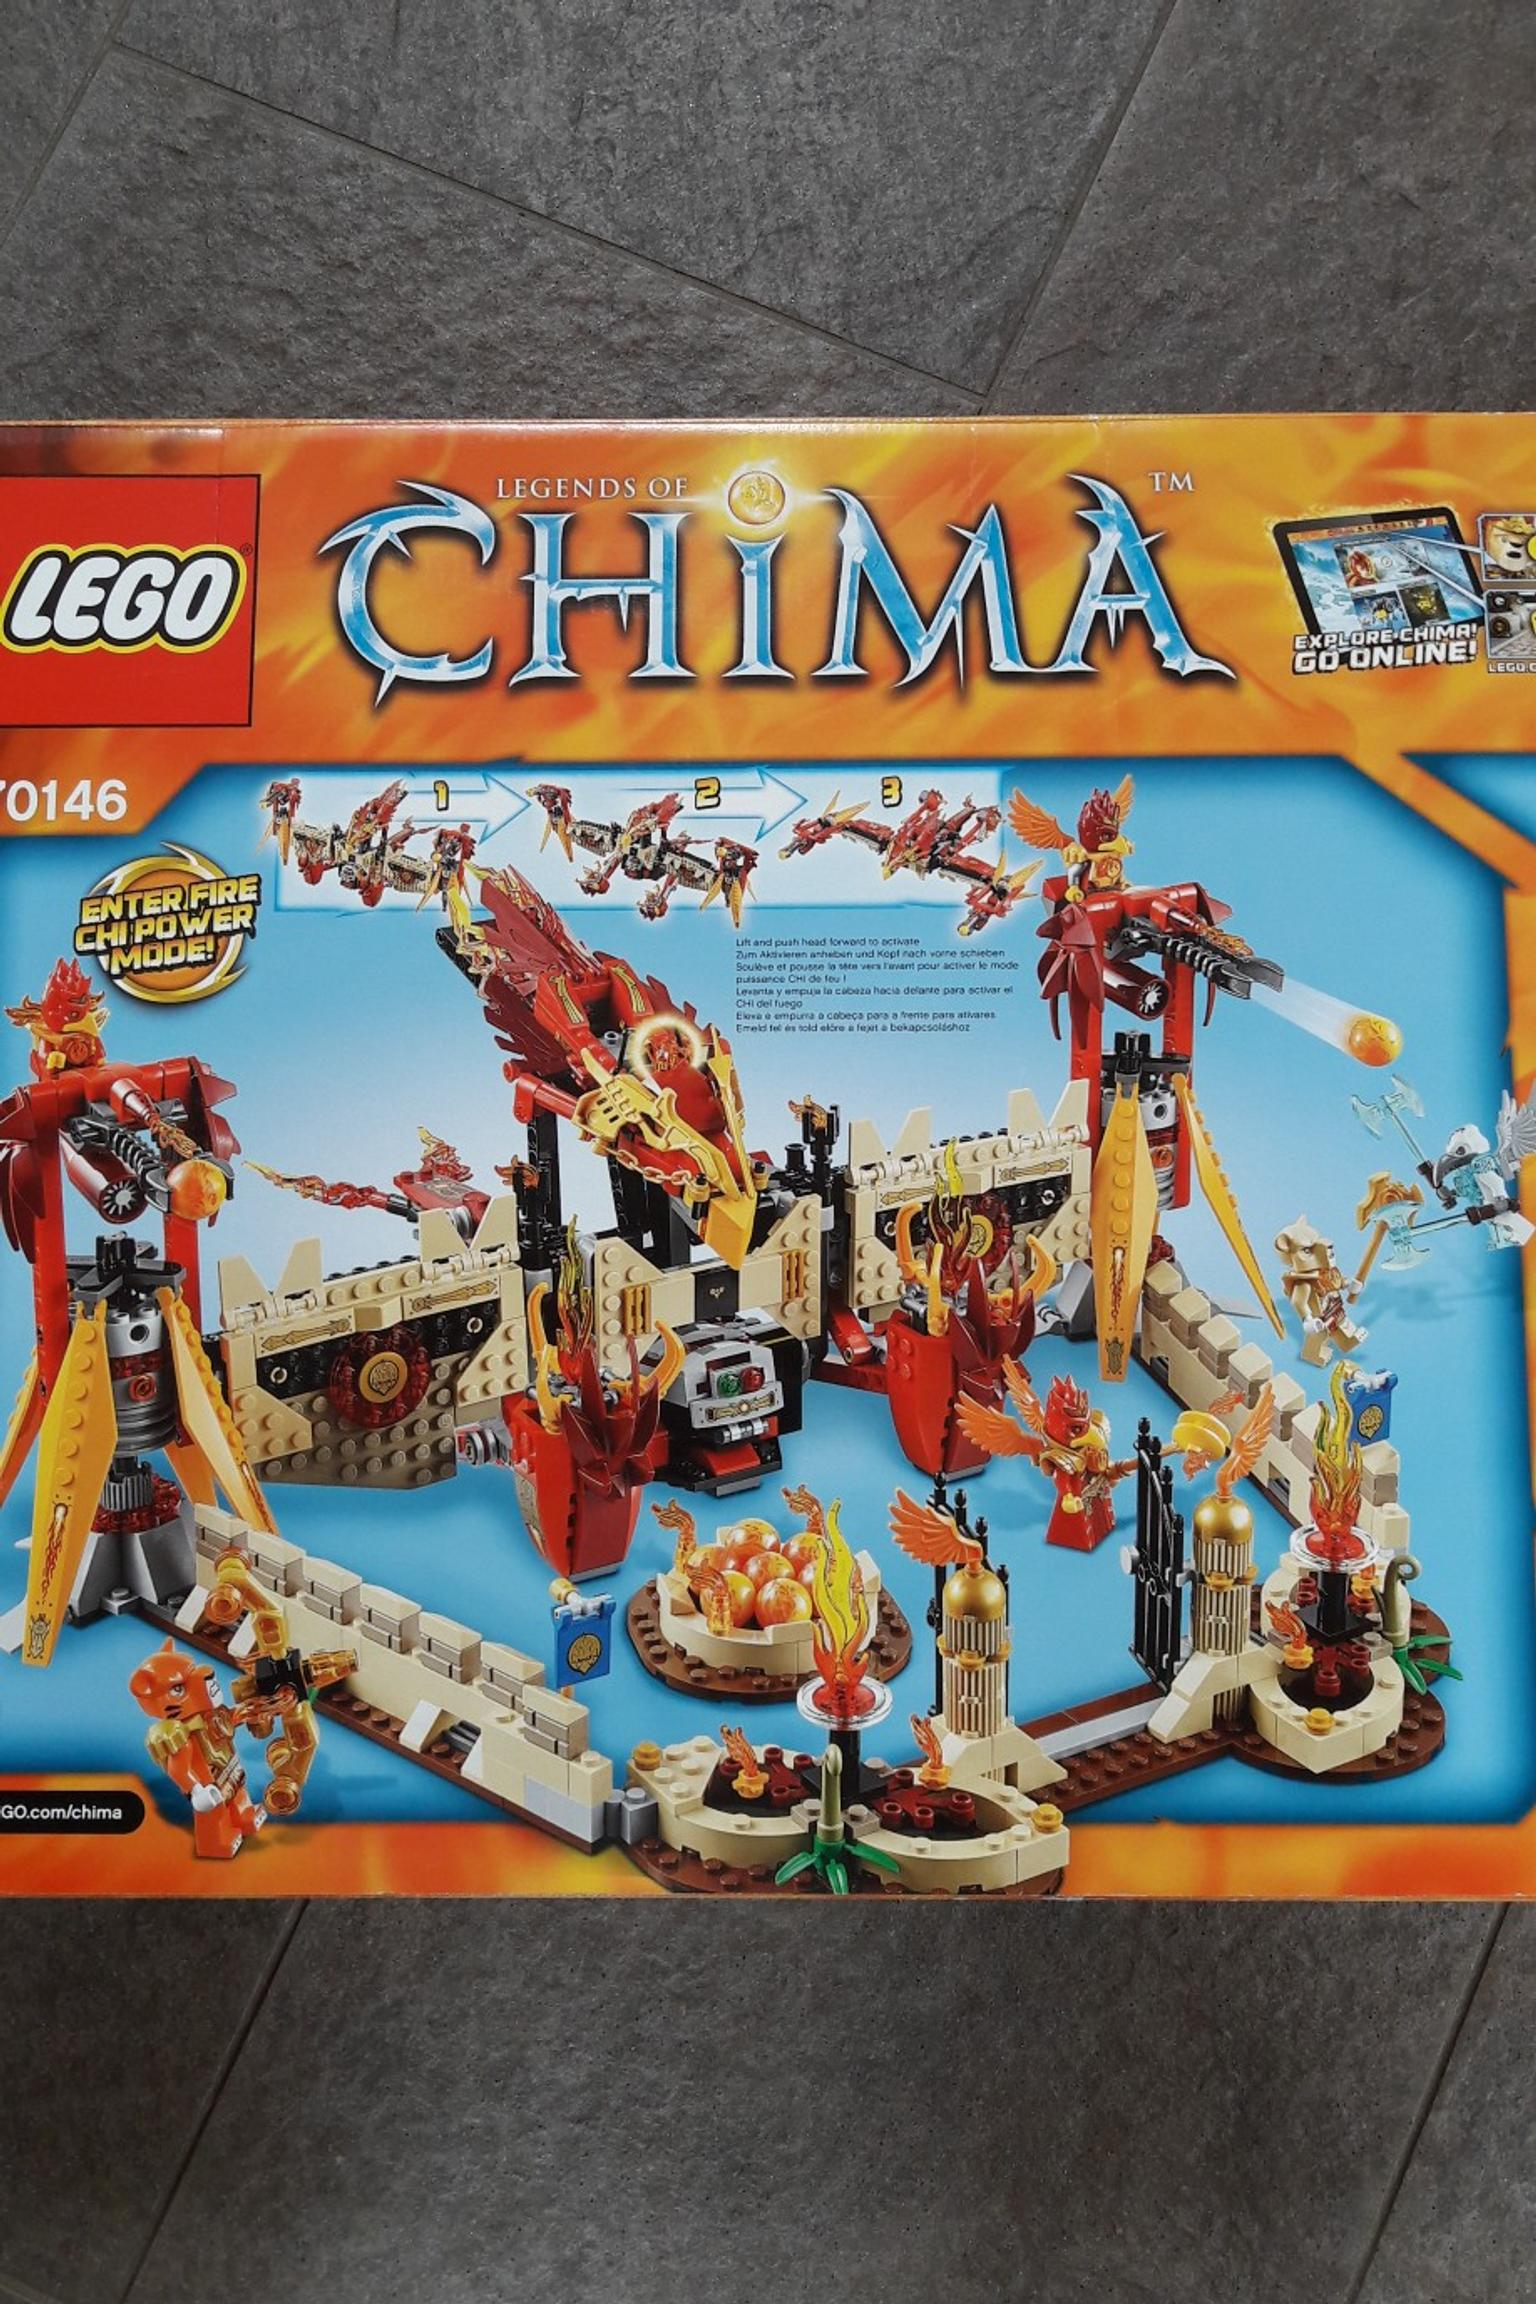 Lego Chima In 6314 Wildschönau For 7500 For Sale Shpock